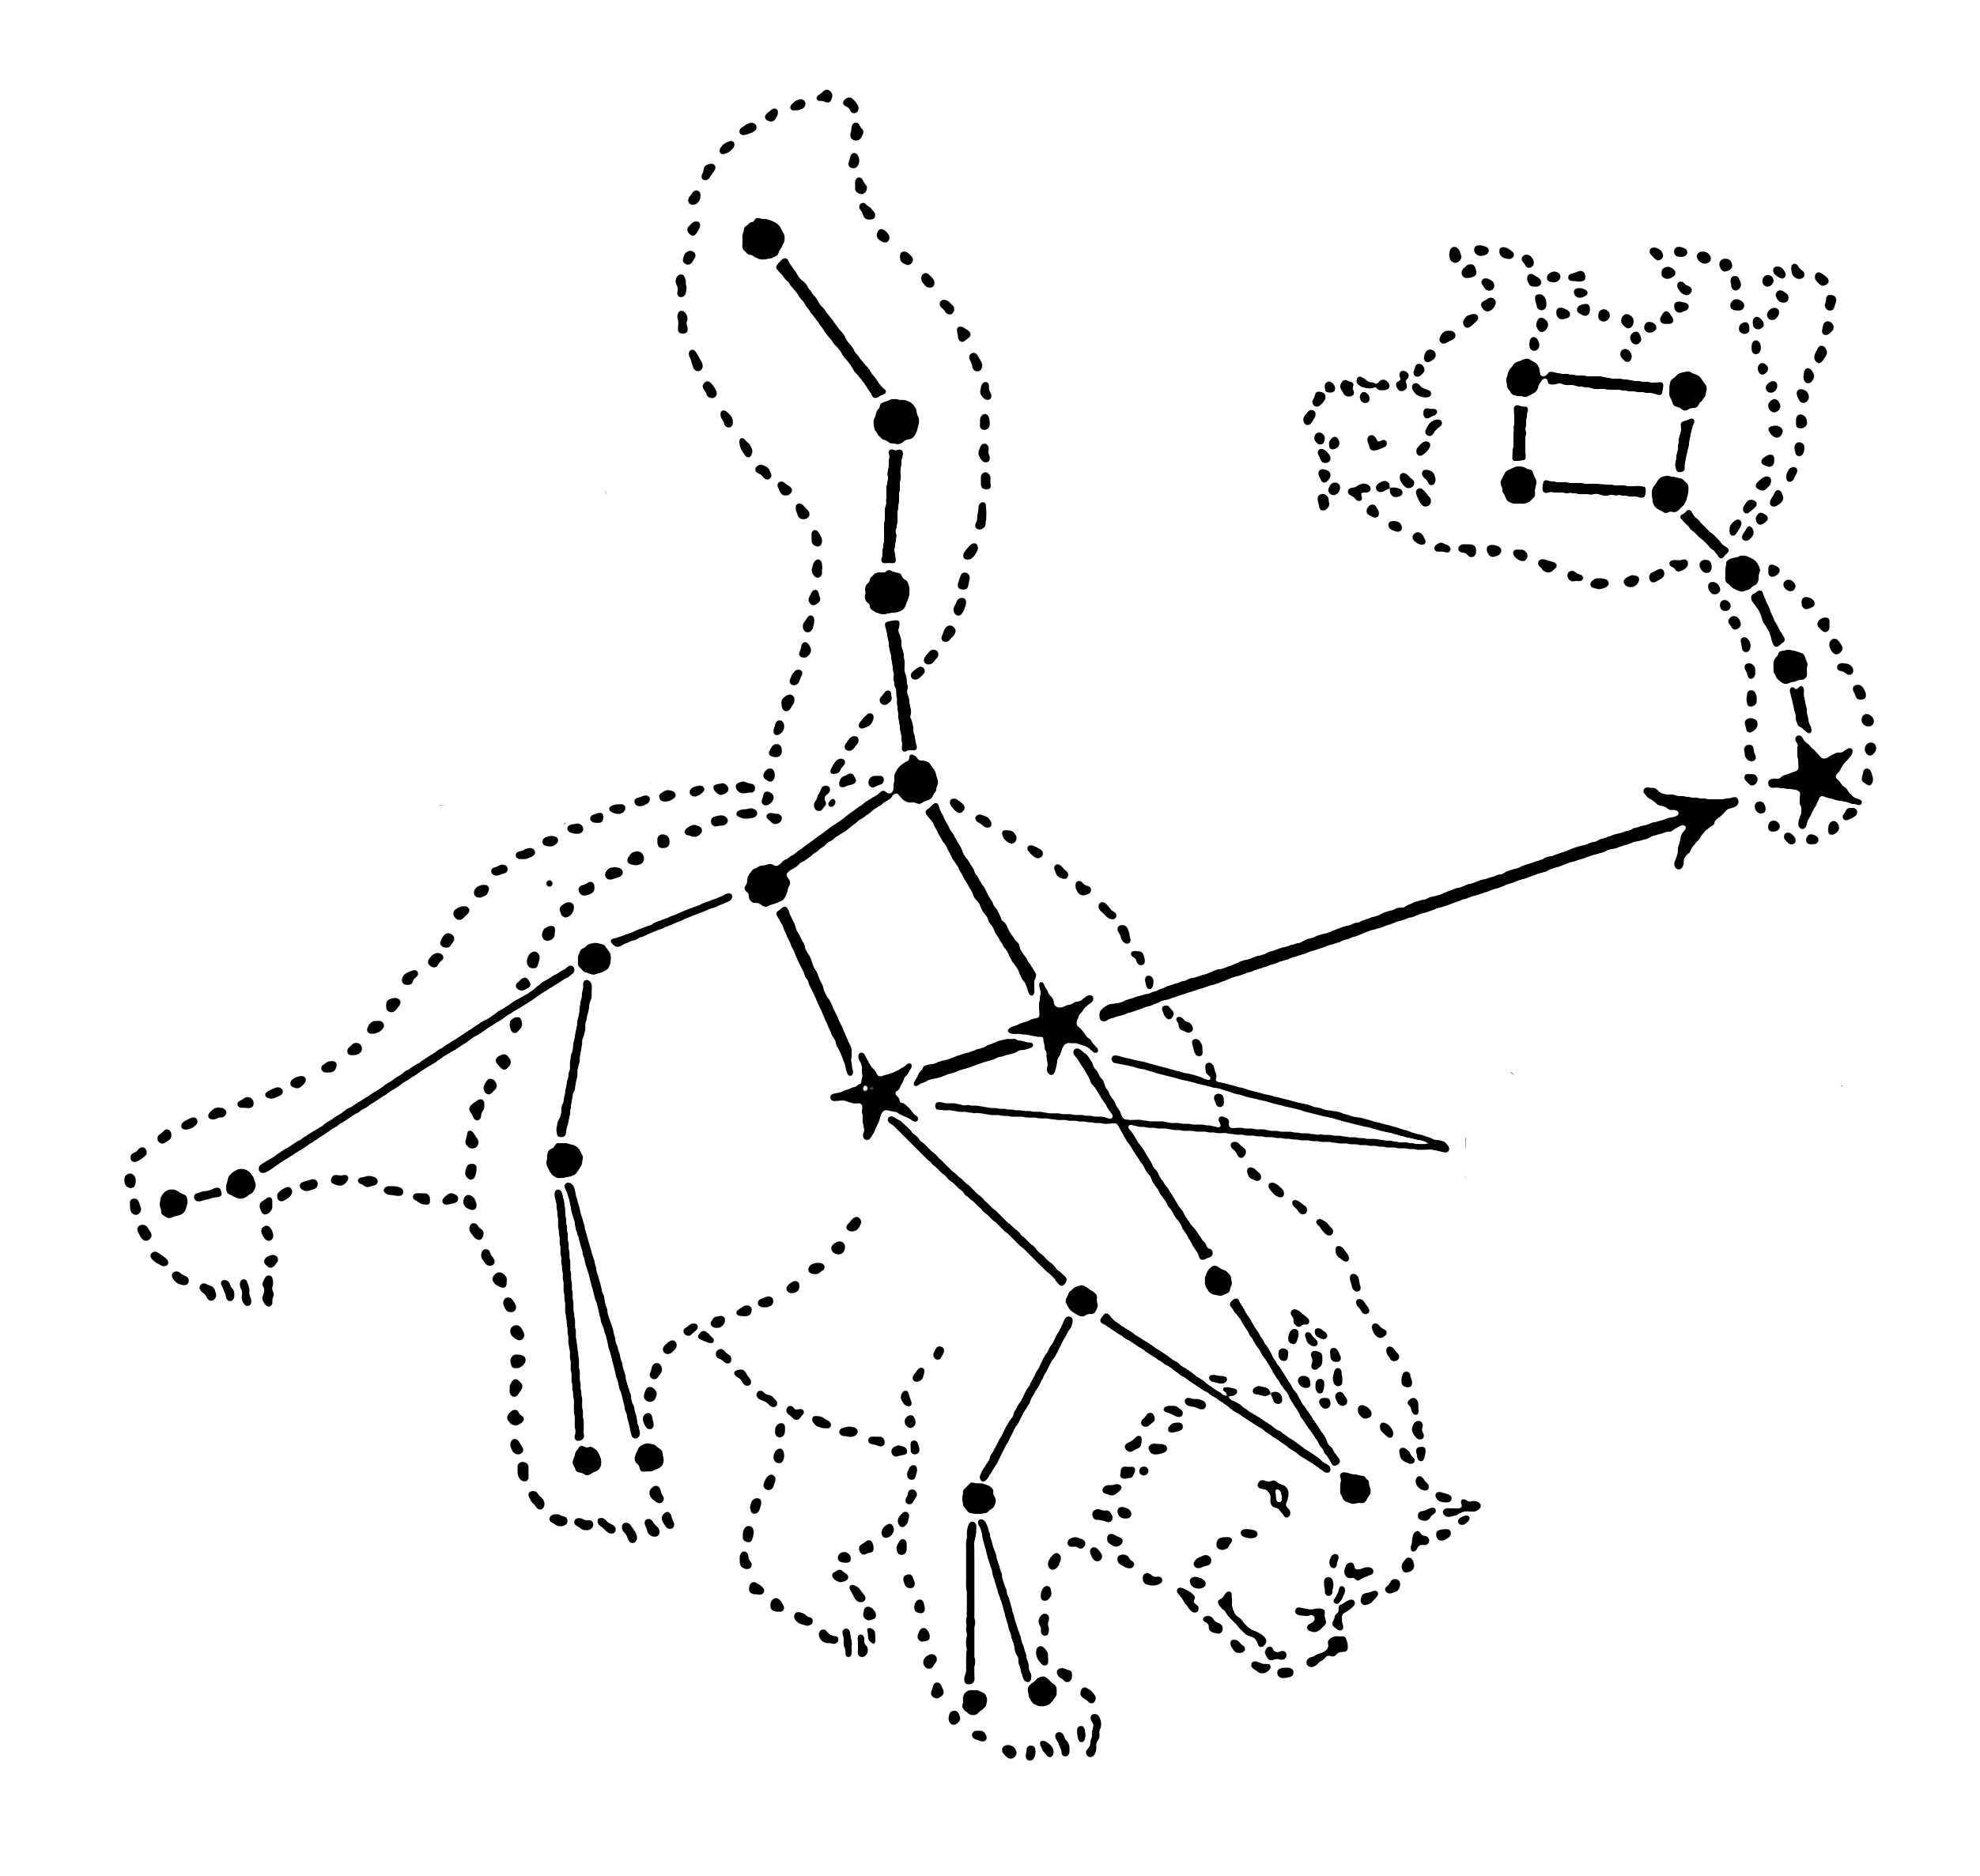 Constellations Ursa Major And Minor Ursa Major  from the Latin